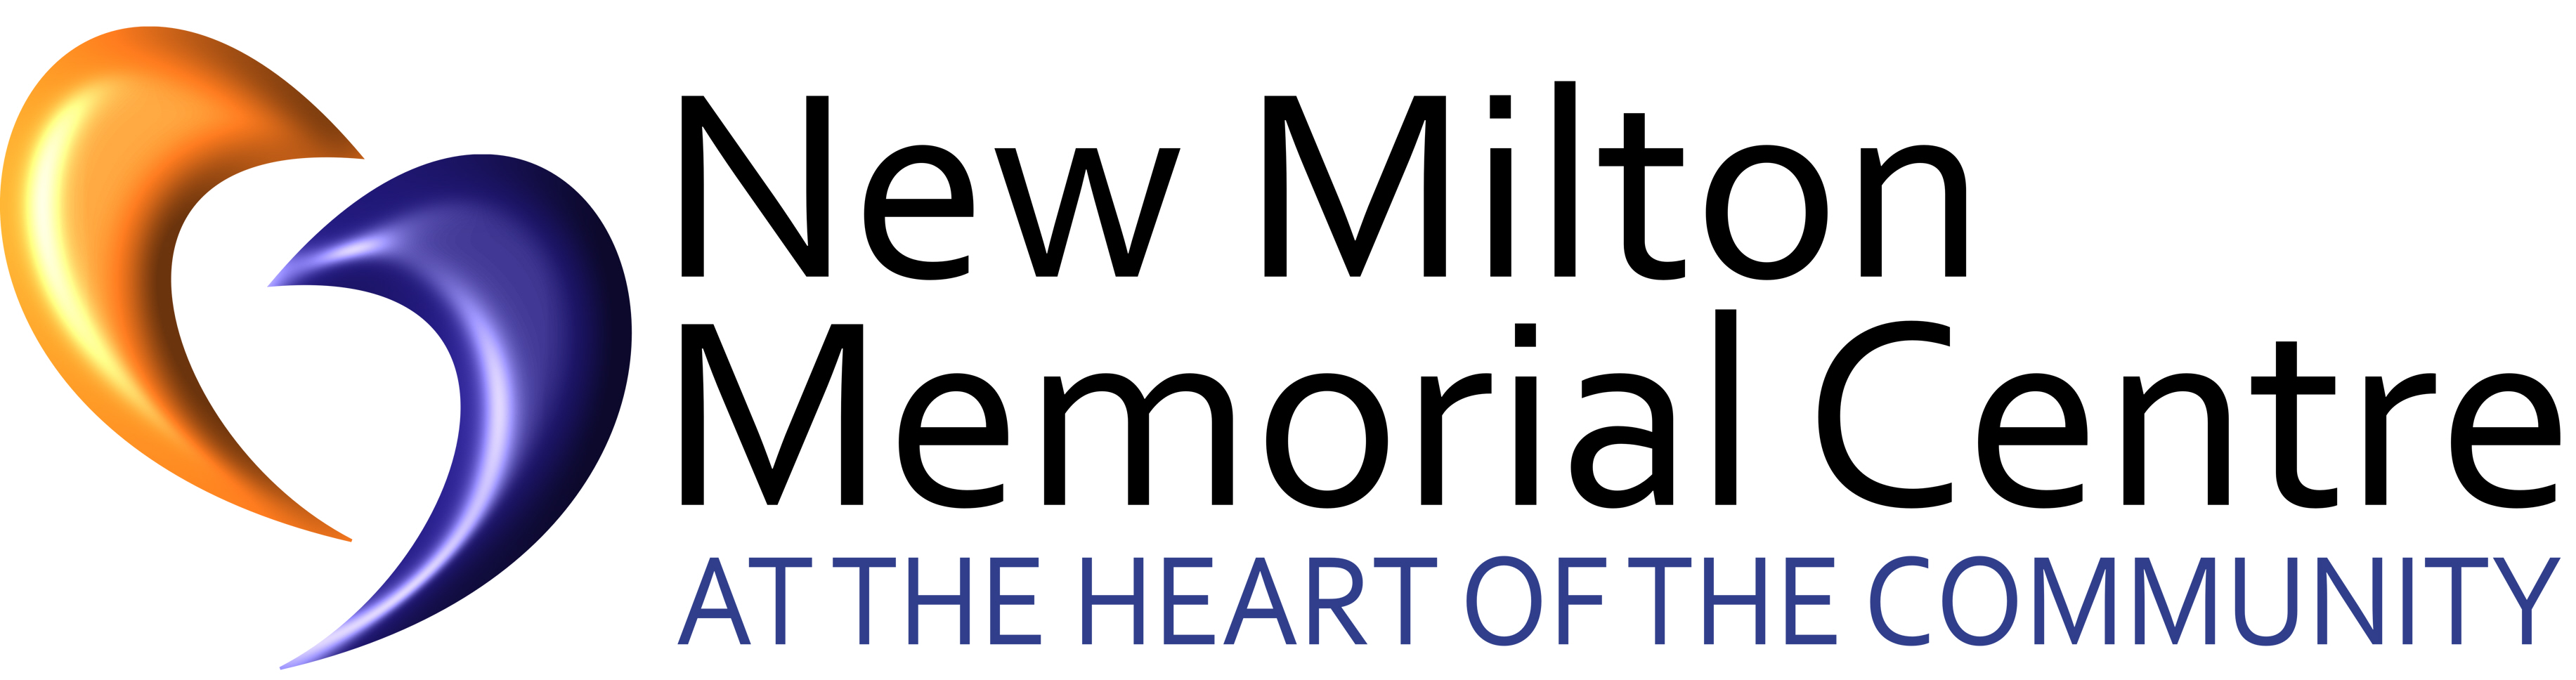 New Milton Memorial Centre